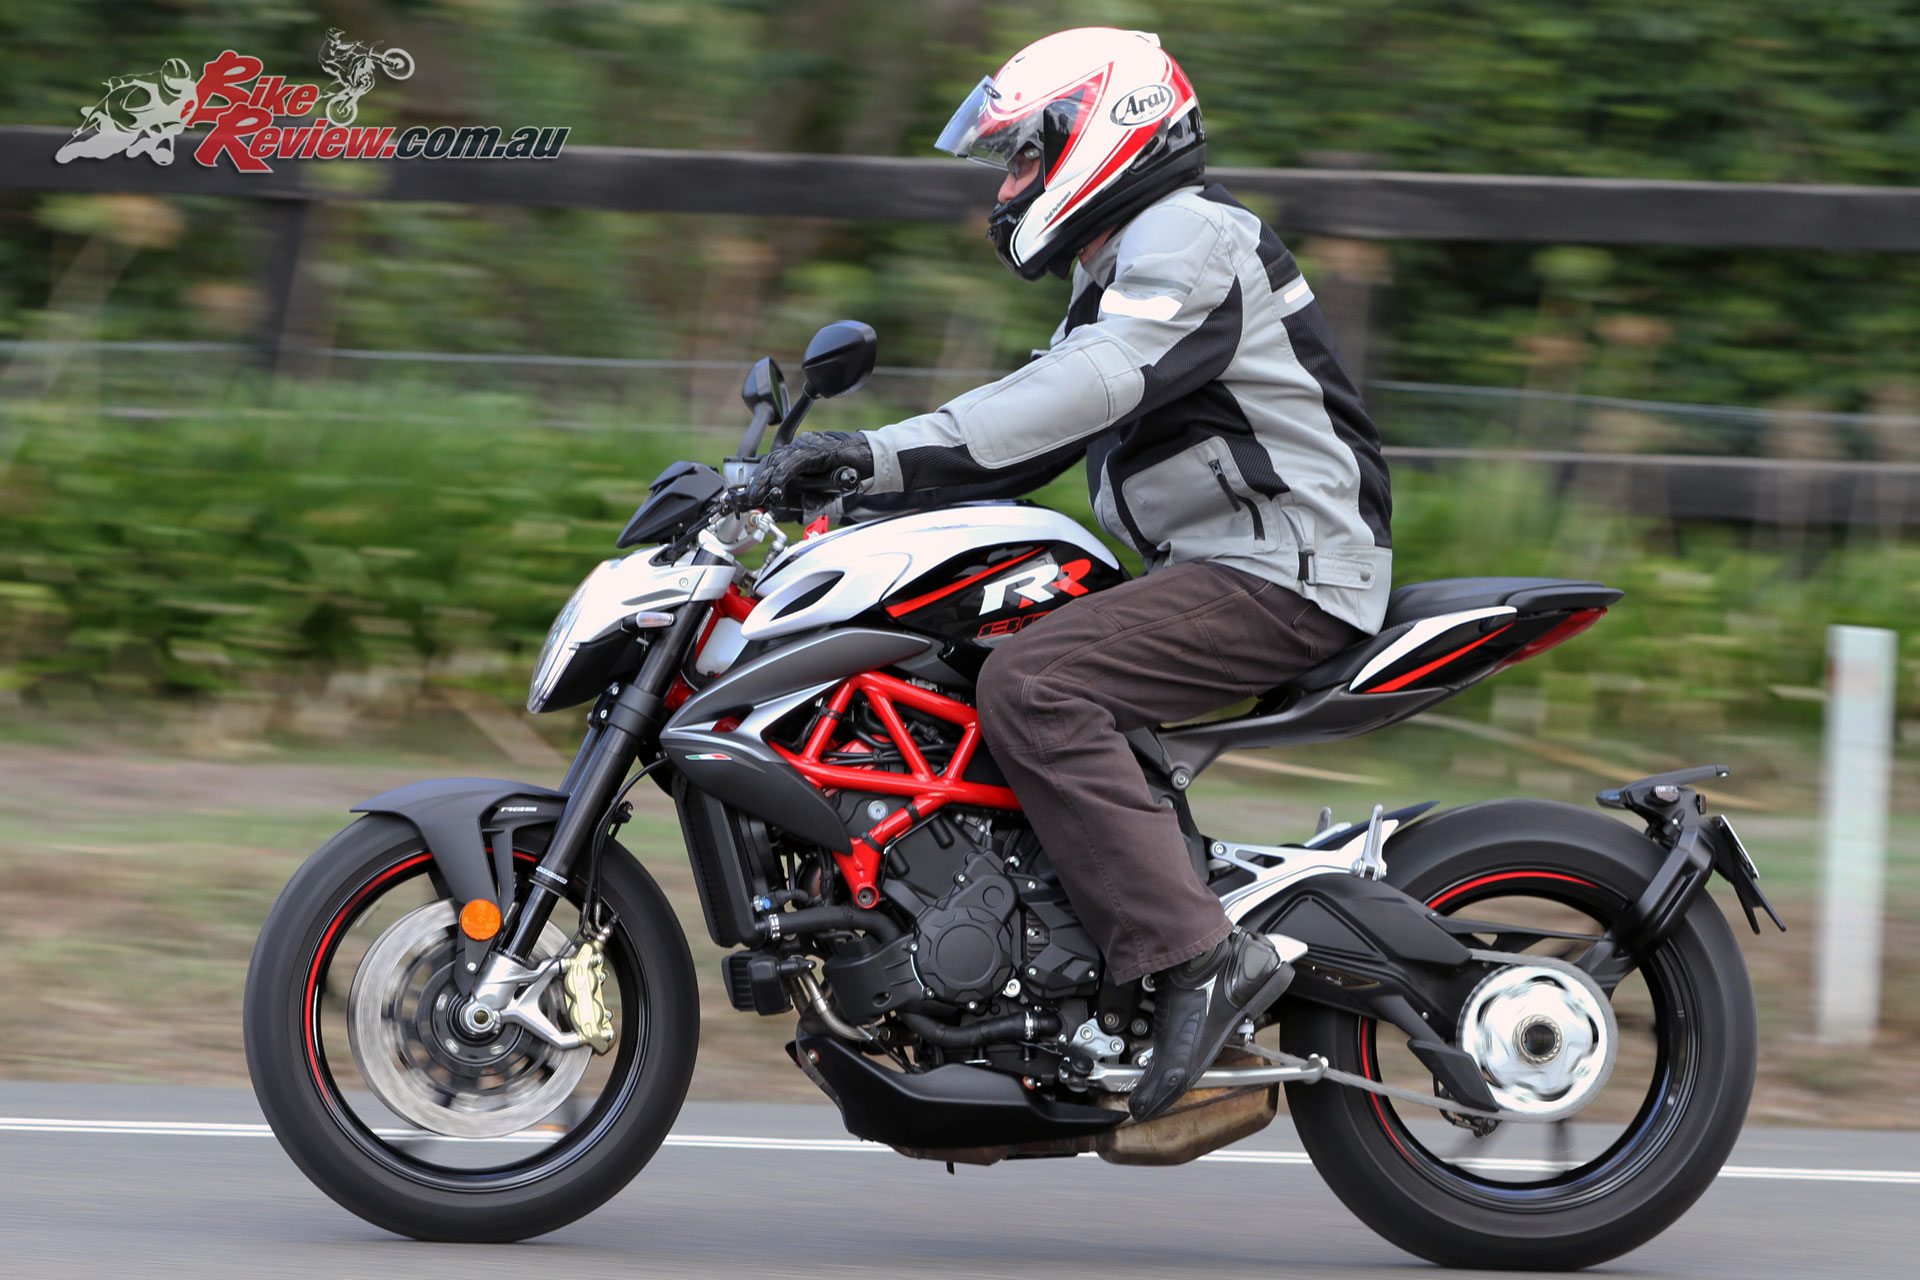 So if you're considering a MV Agusta Brutale, definitely test ride the RR version